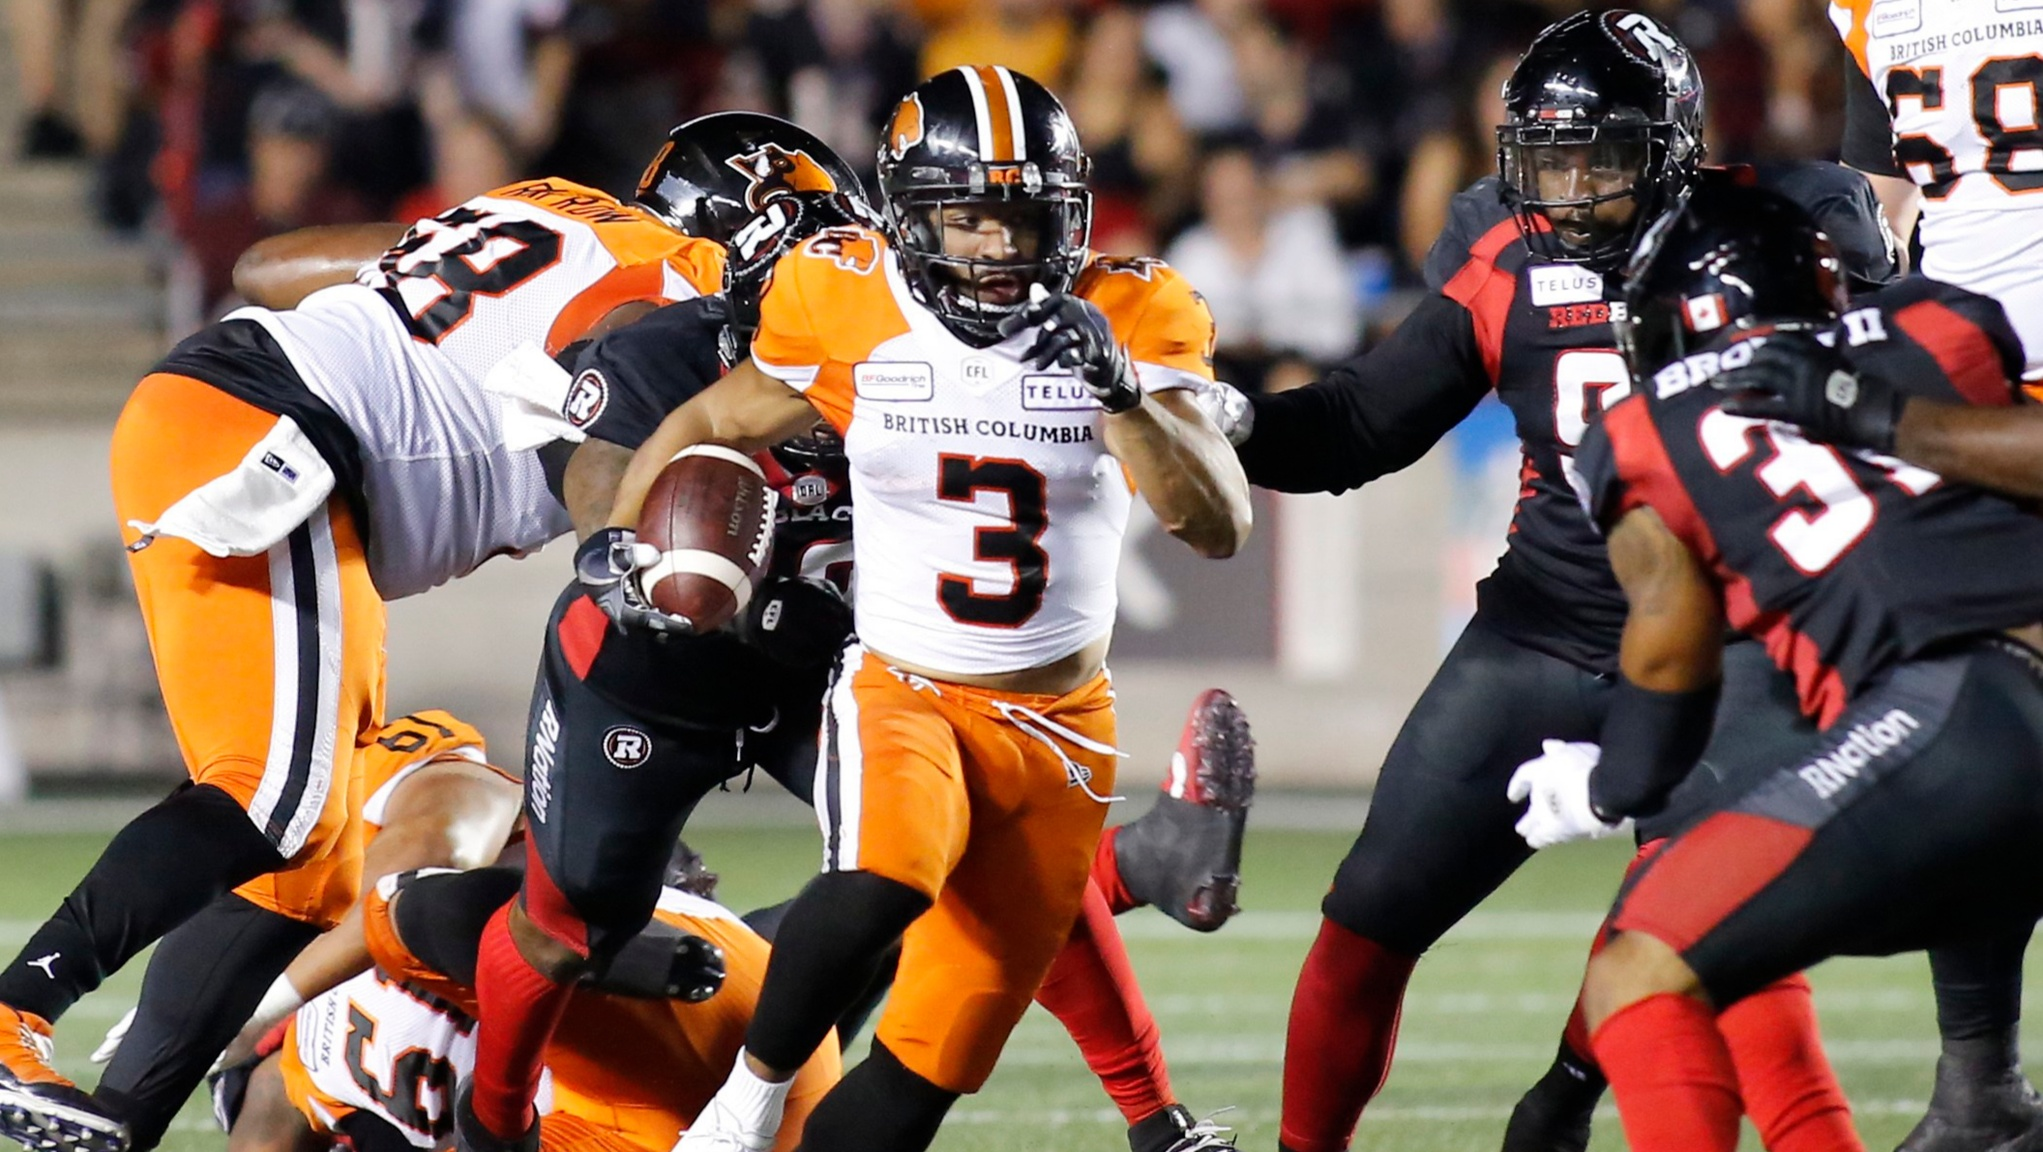 Lions roll over REDBLACKS for biggest win of season - CFL.ca